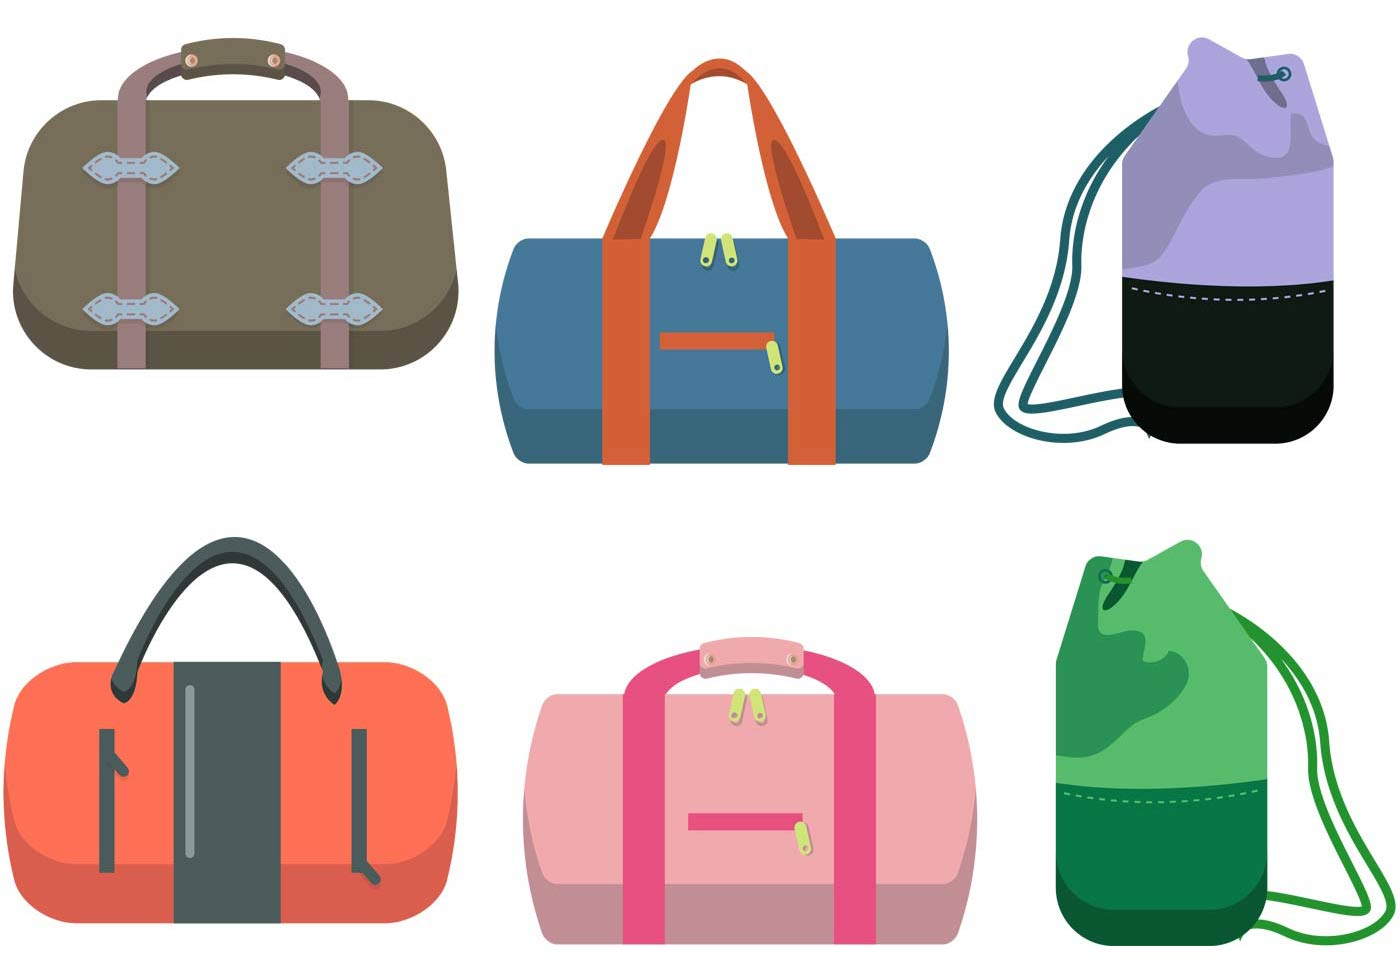 bag free vector art 2066 free downloads rh vecteezy com bag vector free download bag victoria secret